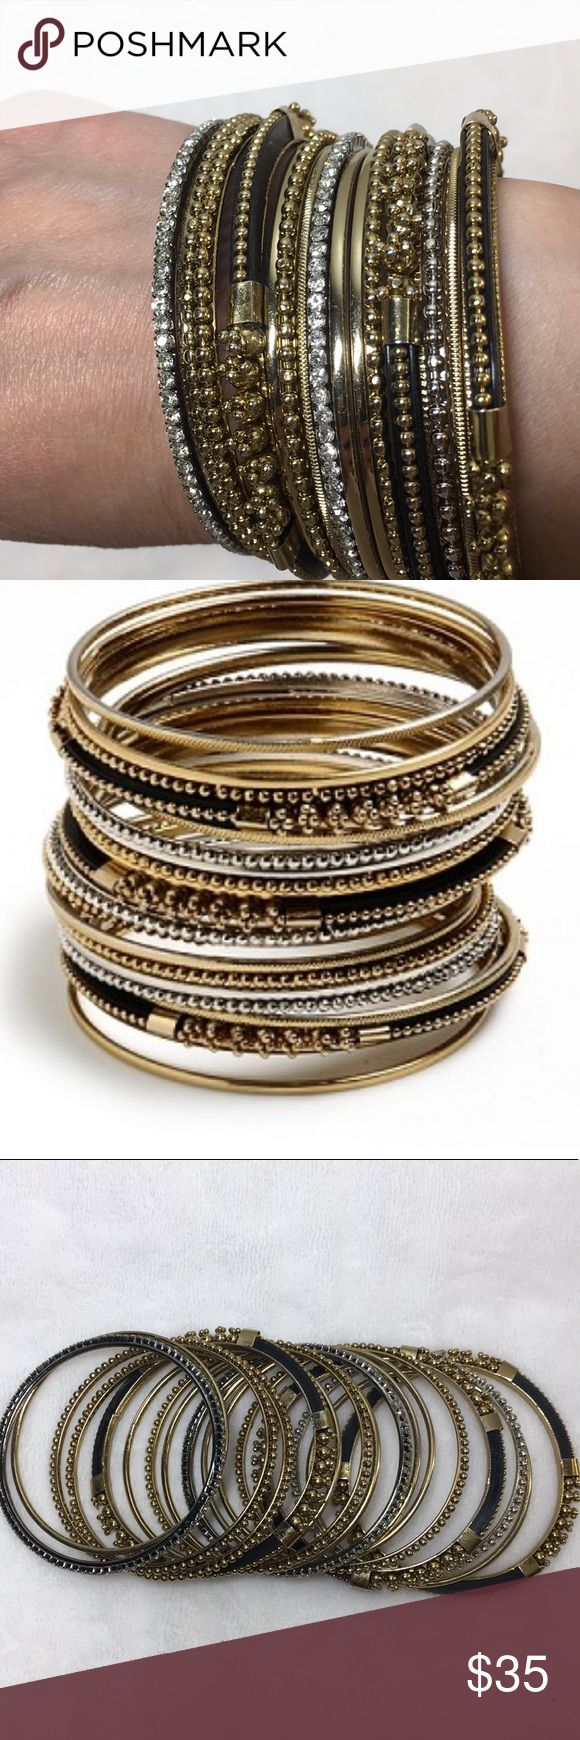 """Excellent Condition Bangle Bangle by Amrita Singh Excellent Condition, worn 1x So gorgeous CHENNAI 15 PIECE BANGLE SET HARD TO FIND SET AMRITA SINGH They are gold/silver over brass beaded edge bracelets with black accents. Beautiful!  These are size 6"""". Amrita Singh Jewelry Bracelets"""